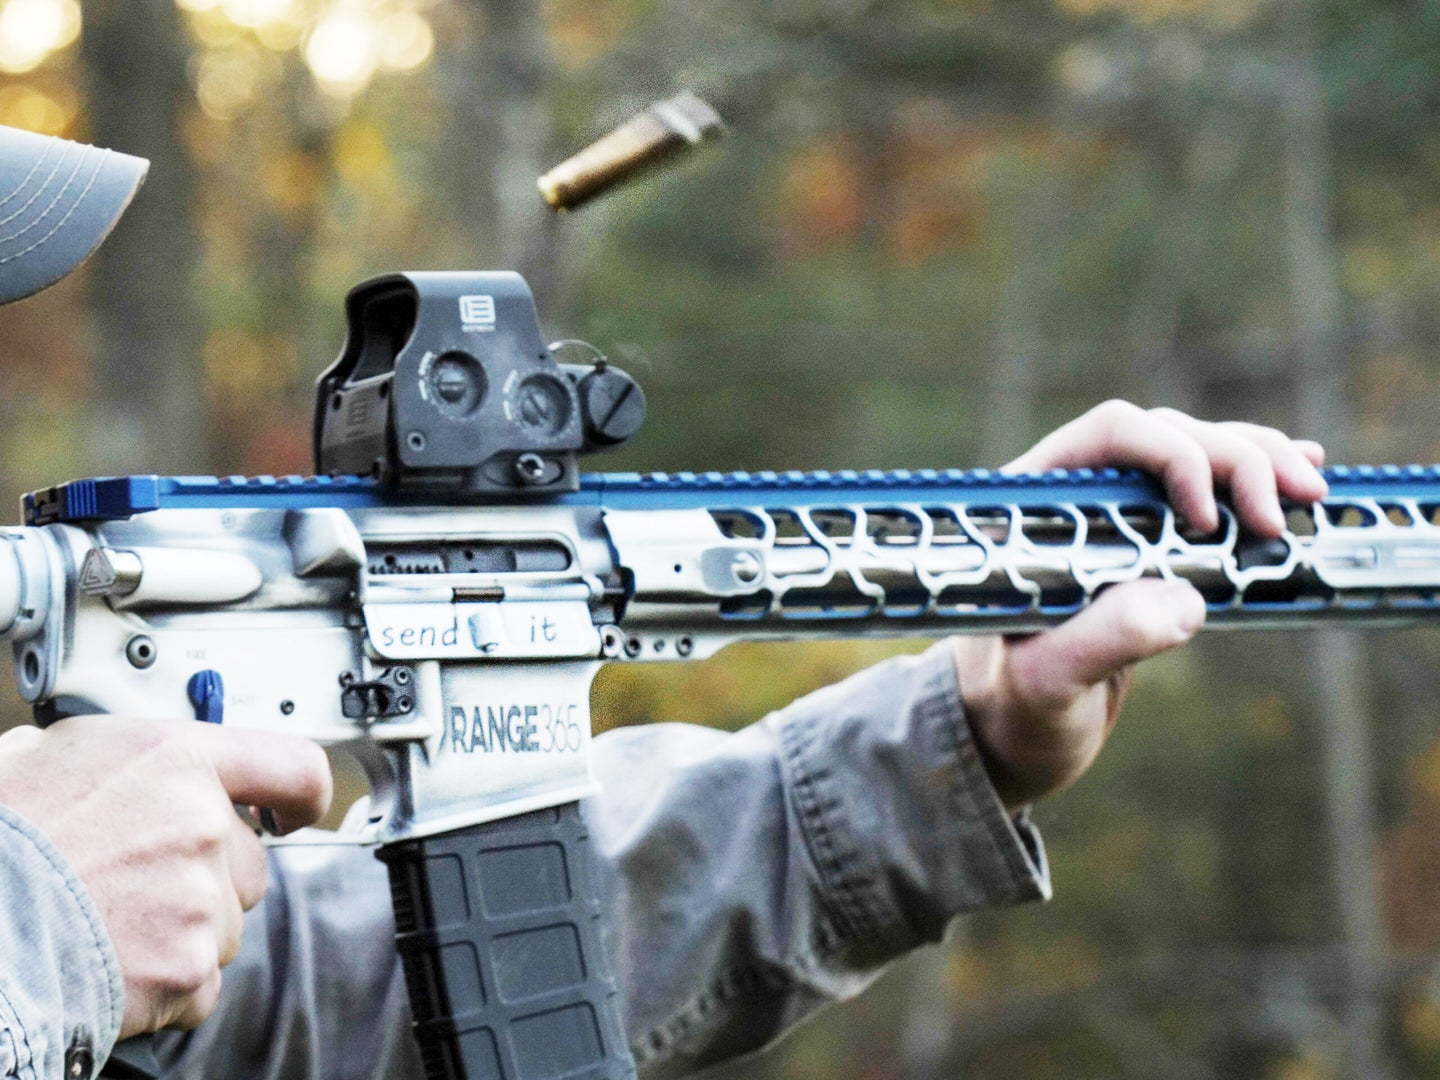 Building an AR-15 Step-by-Step, Part 2: The Upper Receiver